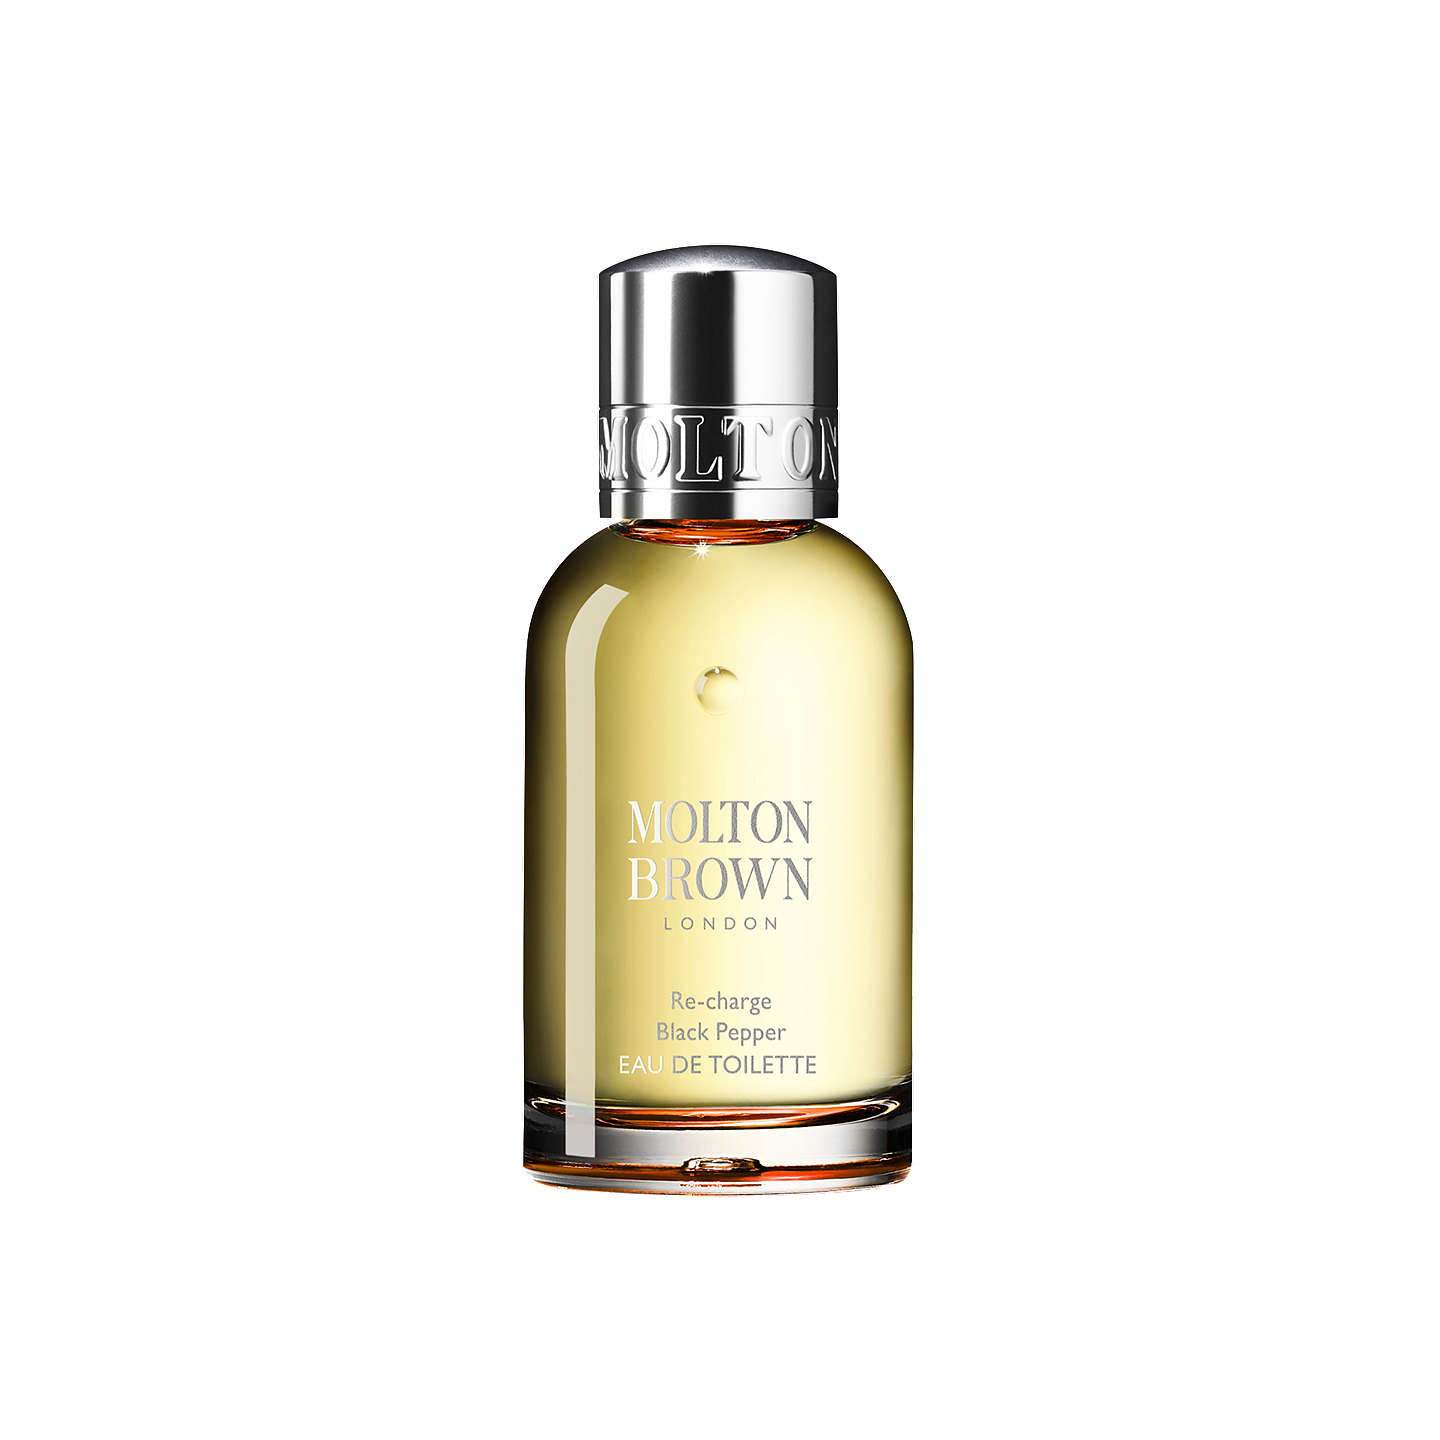 Clinique Body Cream Spf40 150ml At John Lewis: Molton Brown Black Peppercorn Eau De Toilette, 50ml At